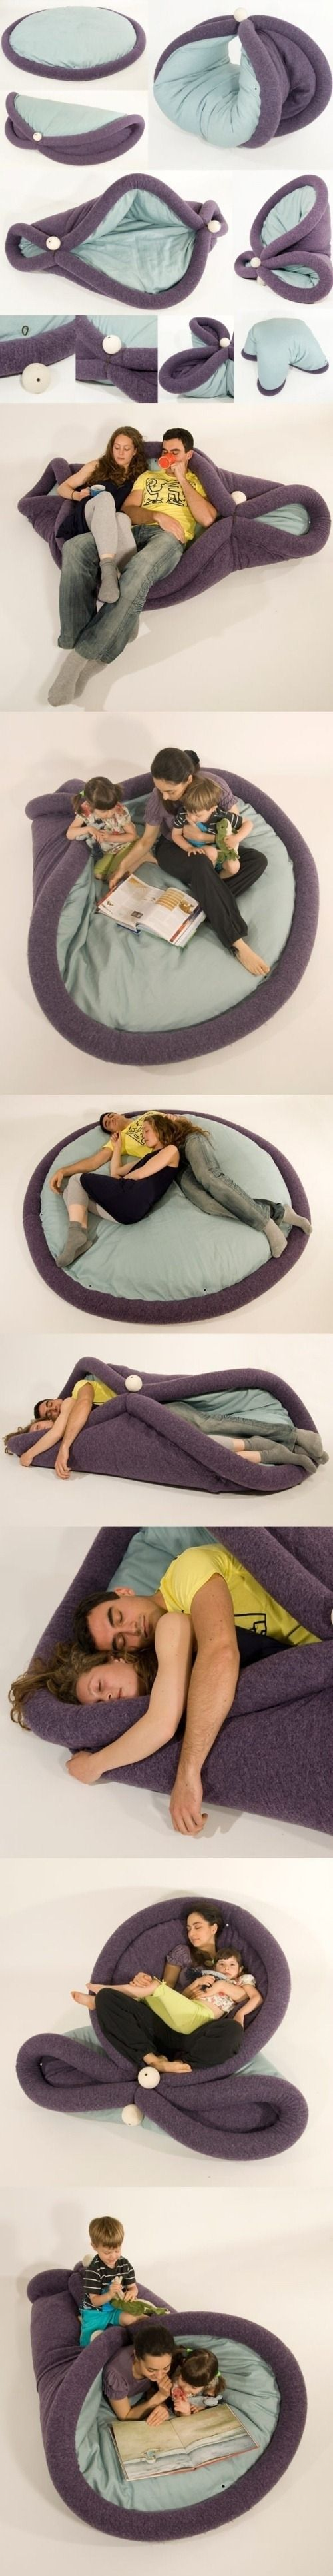 Blandito pillow. This is awesome.